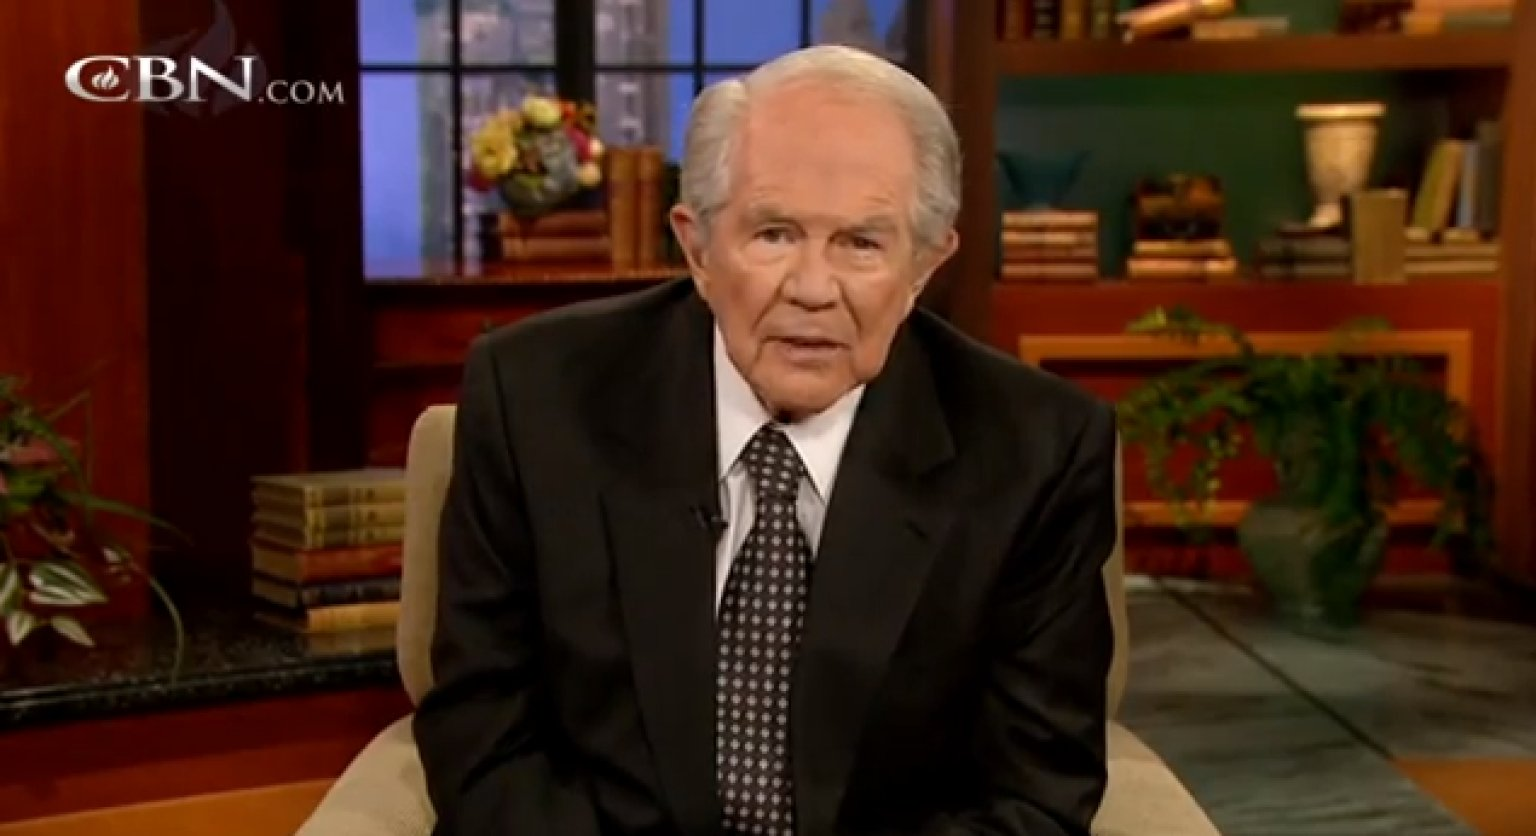 God Will Intervene in Overturning Election Results,' Says Televangelist Pat Robertson